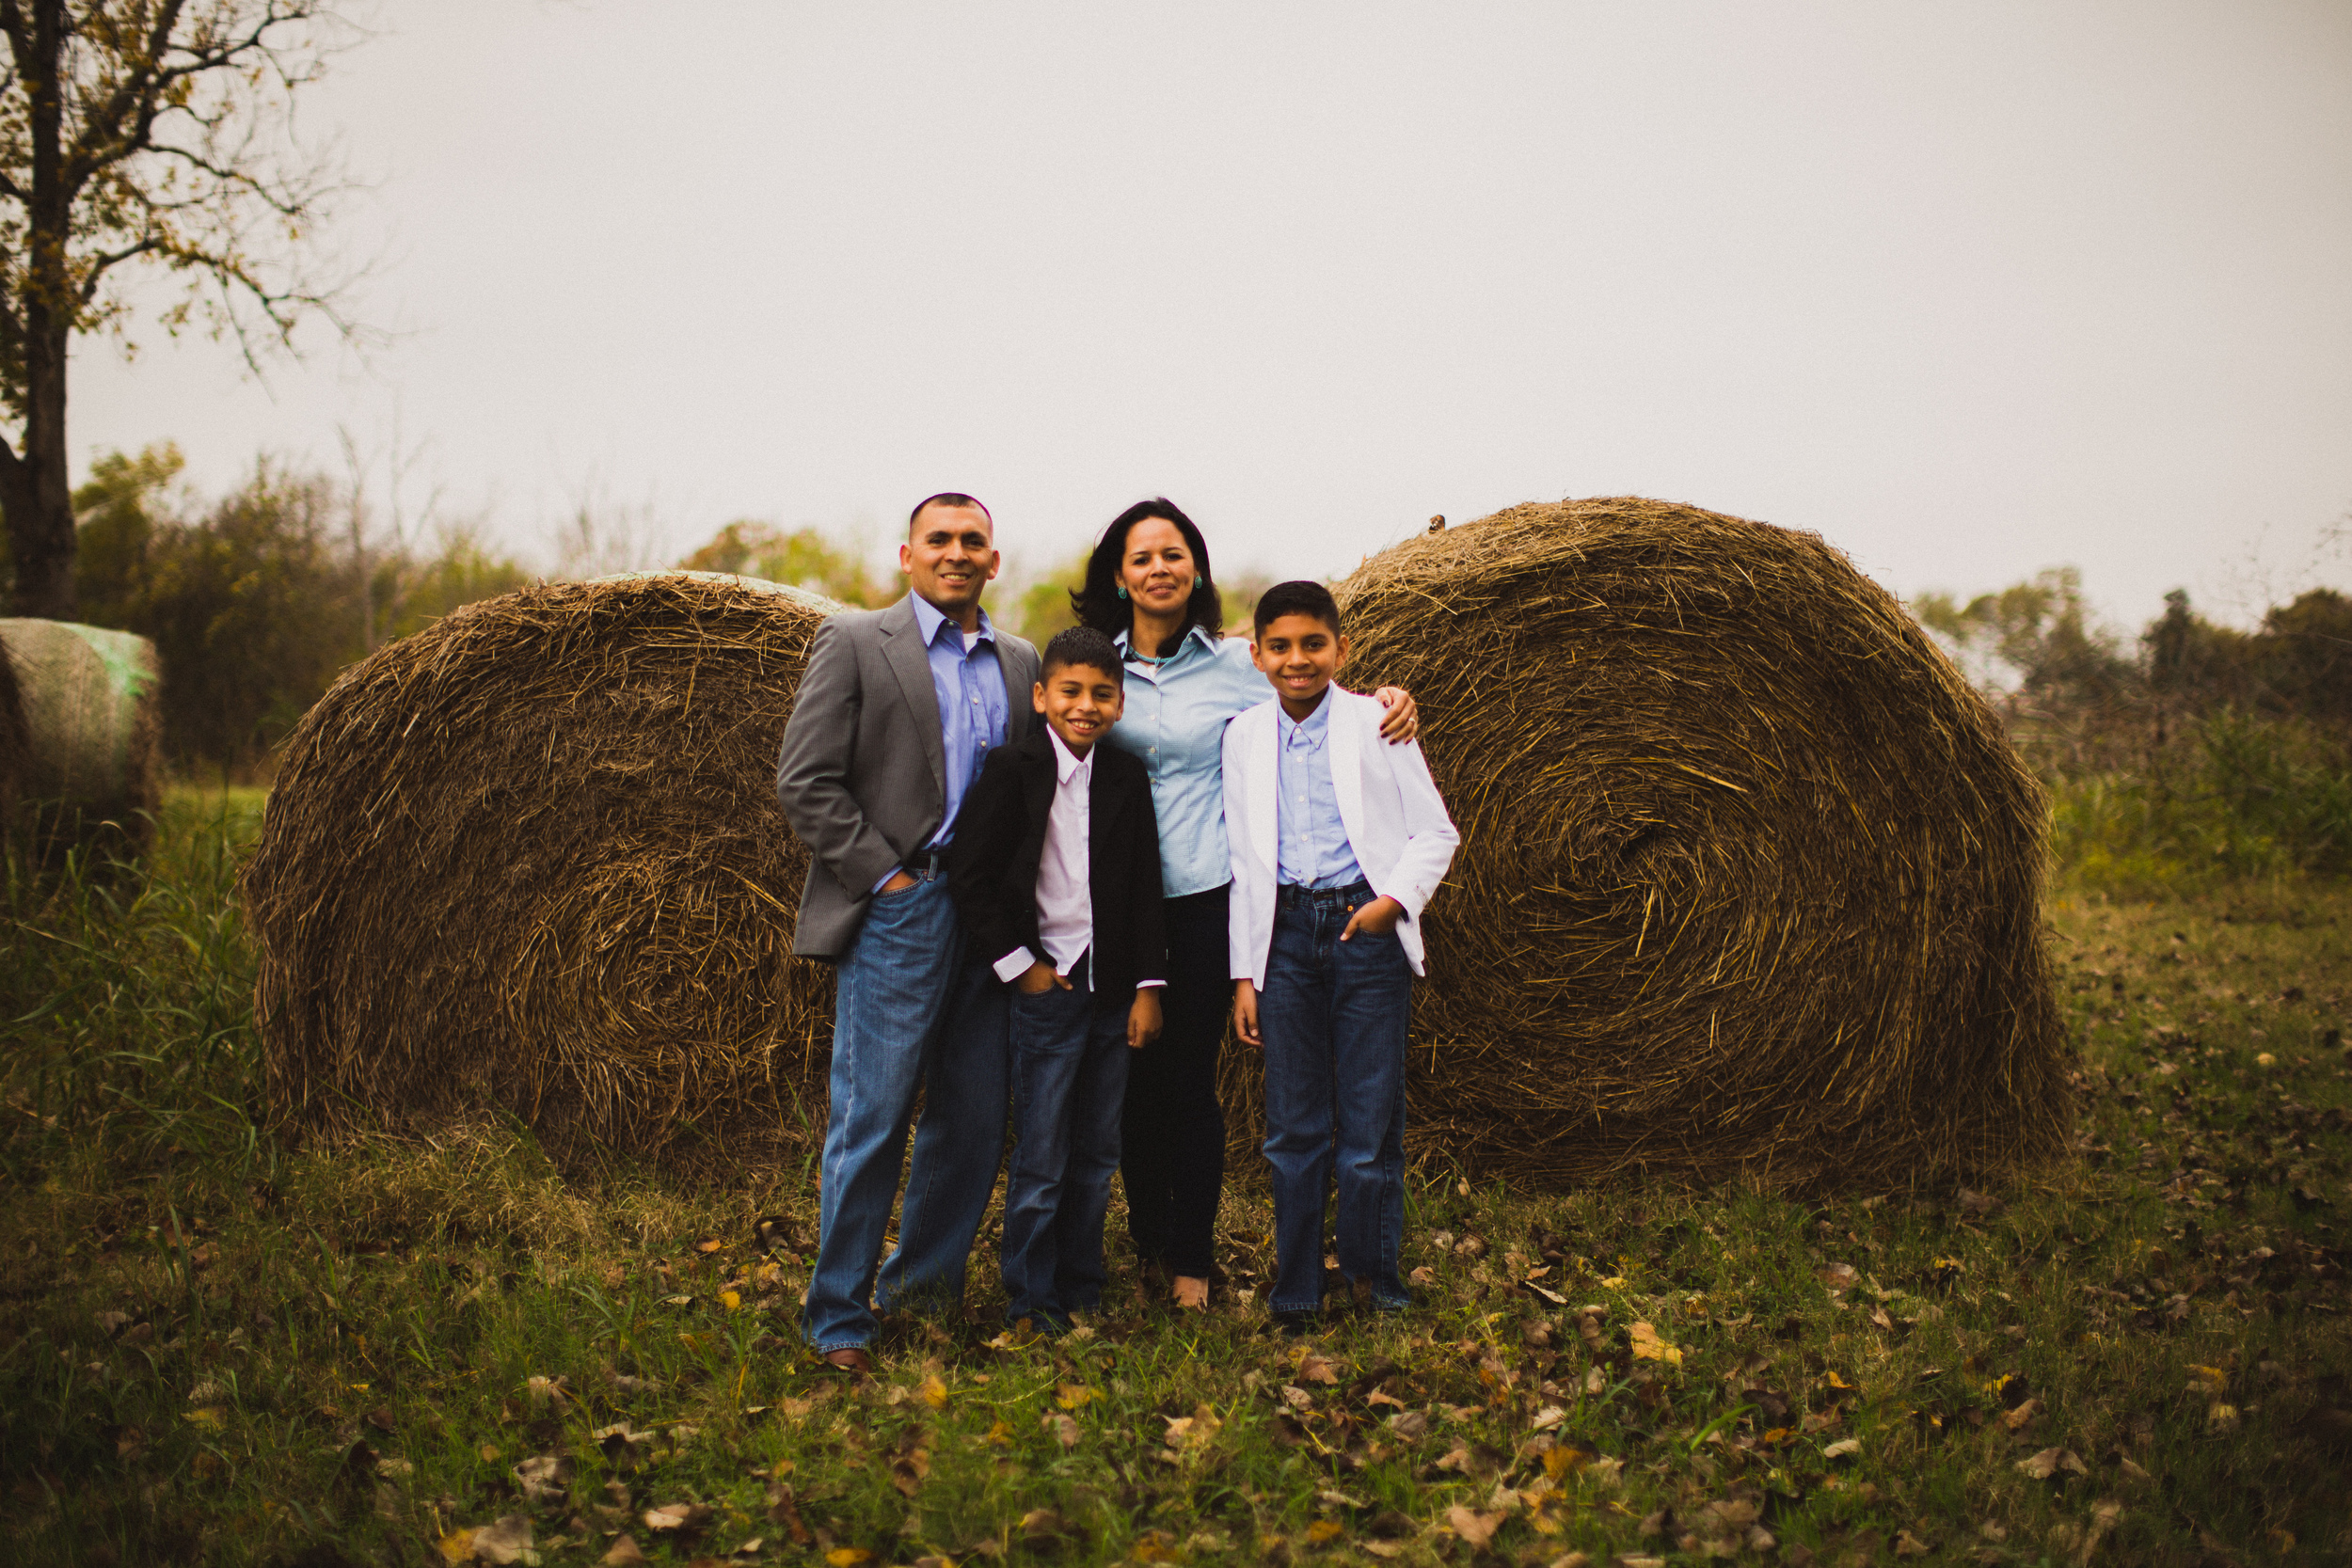 houston family photography_h2014_henriquez-25.jpg